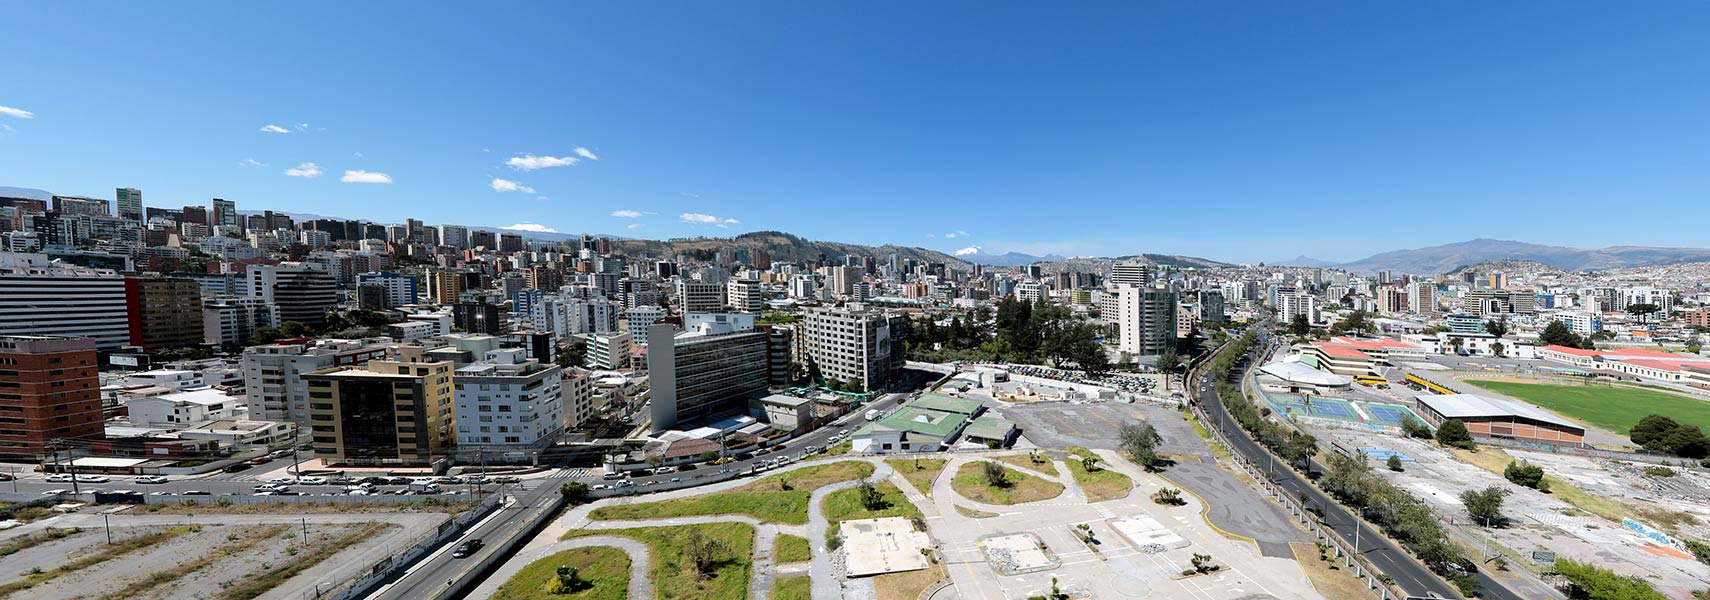 Google Map of Quito, Ecuador - Nations Online Project